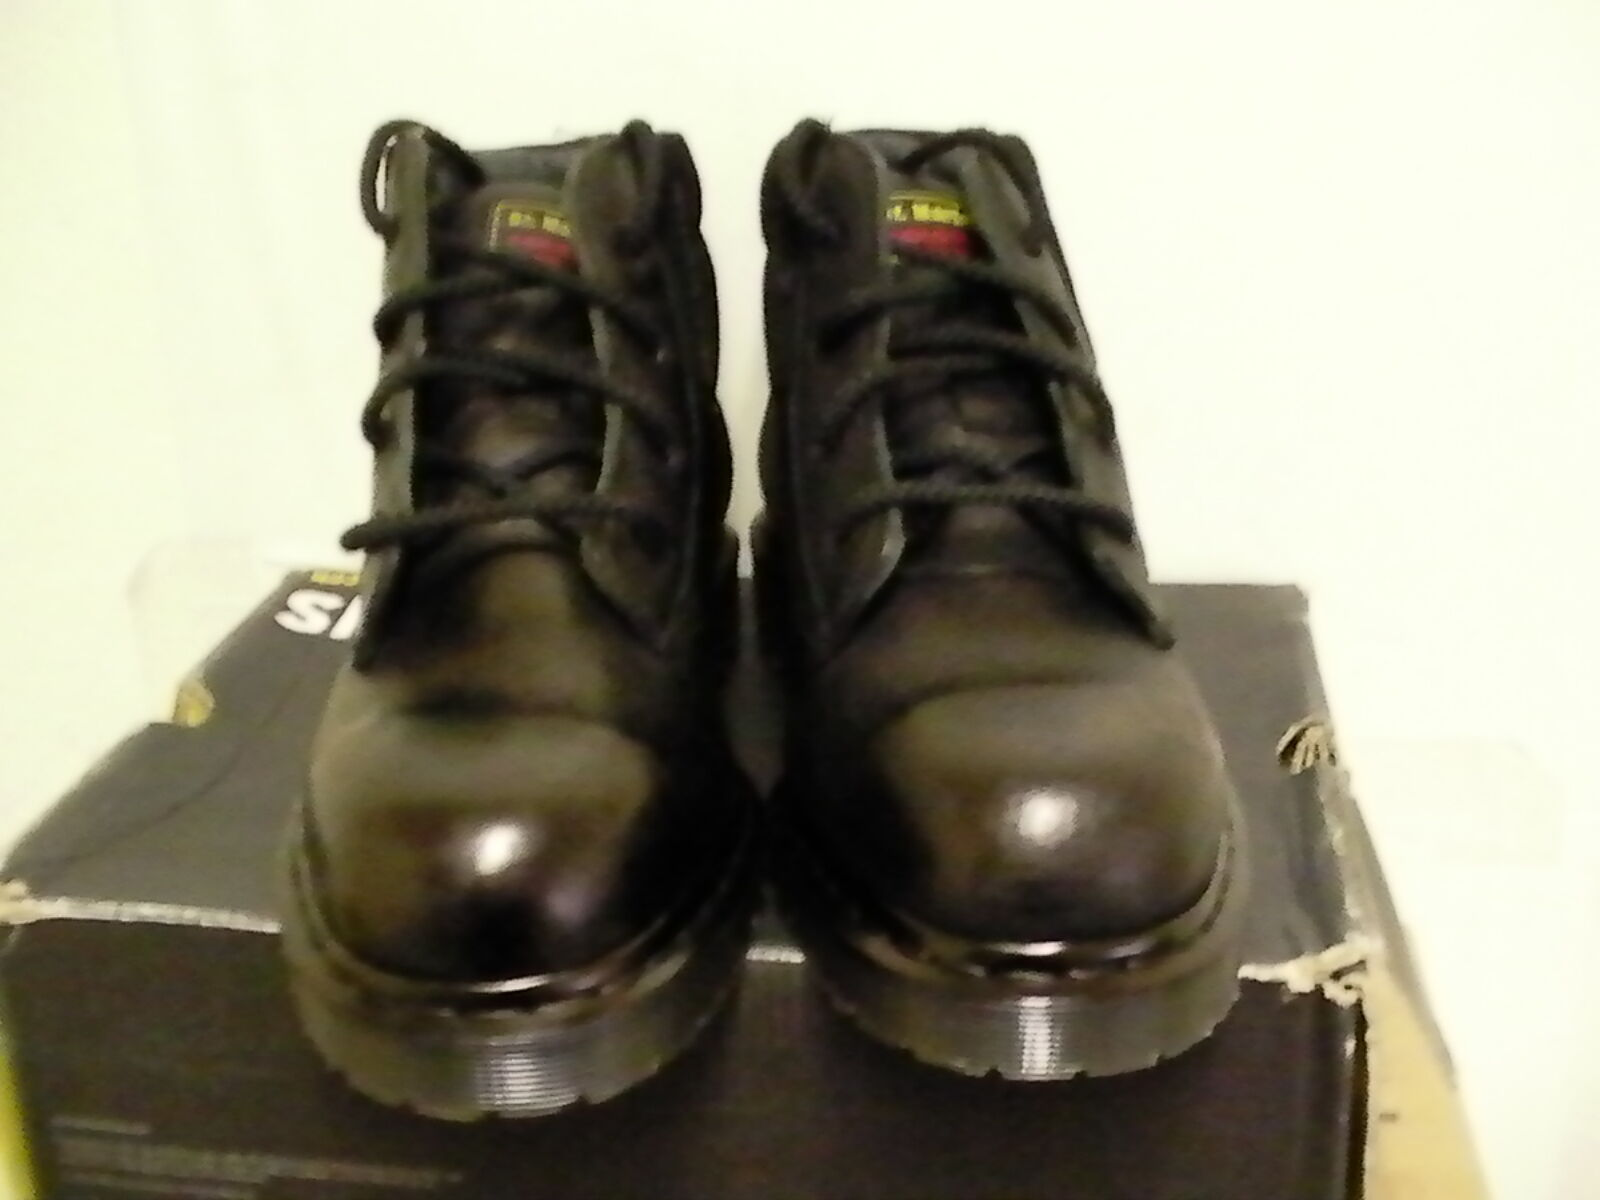 Dr martens boots boots boots new icon 4 eye boot steel toe size 8 M us 4a4c4a